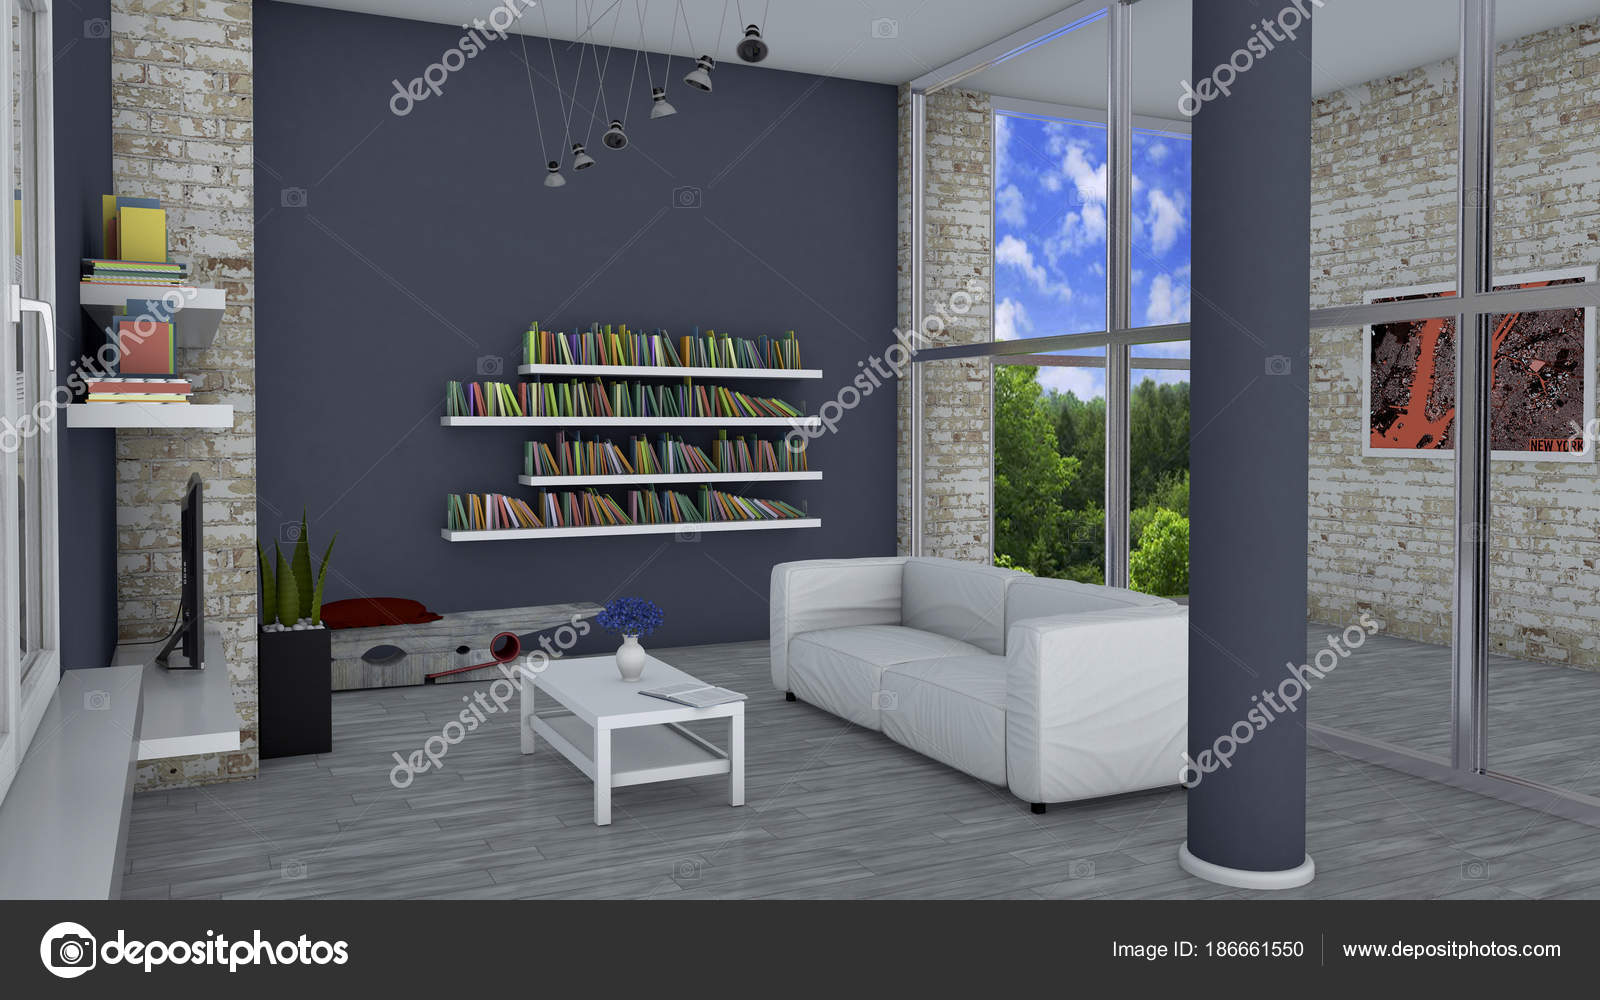 Interior design living room modern furniture brick wall window overlooking stock photo